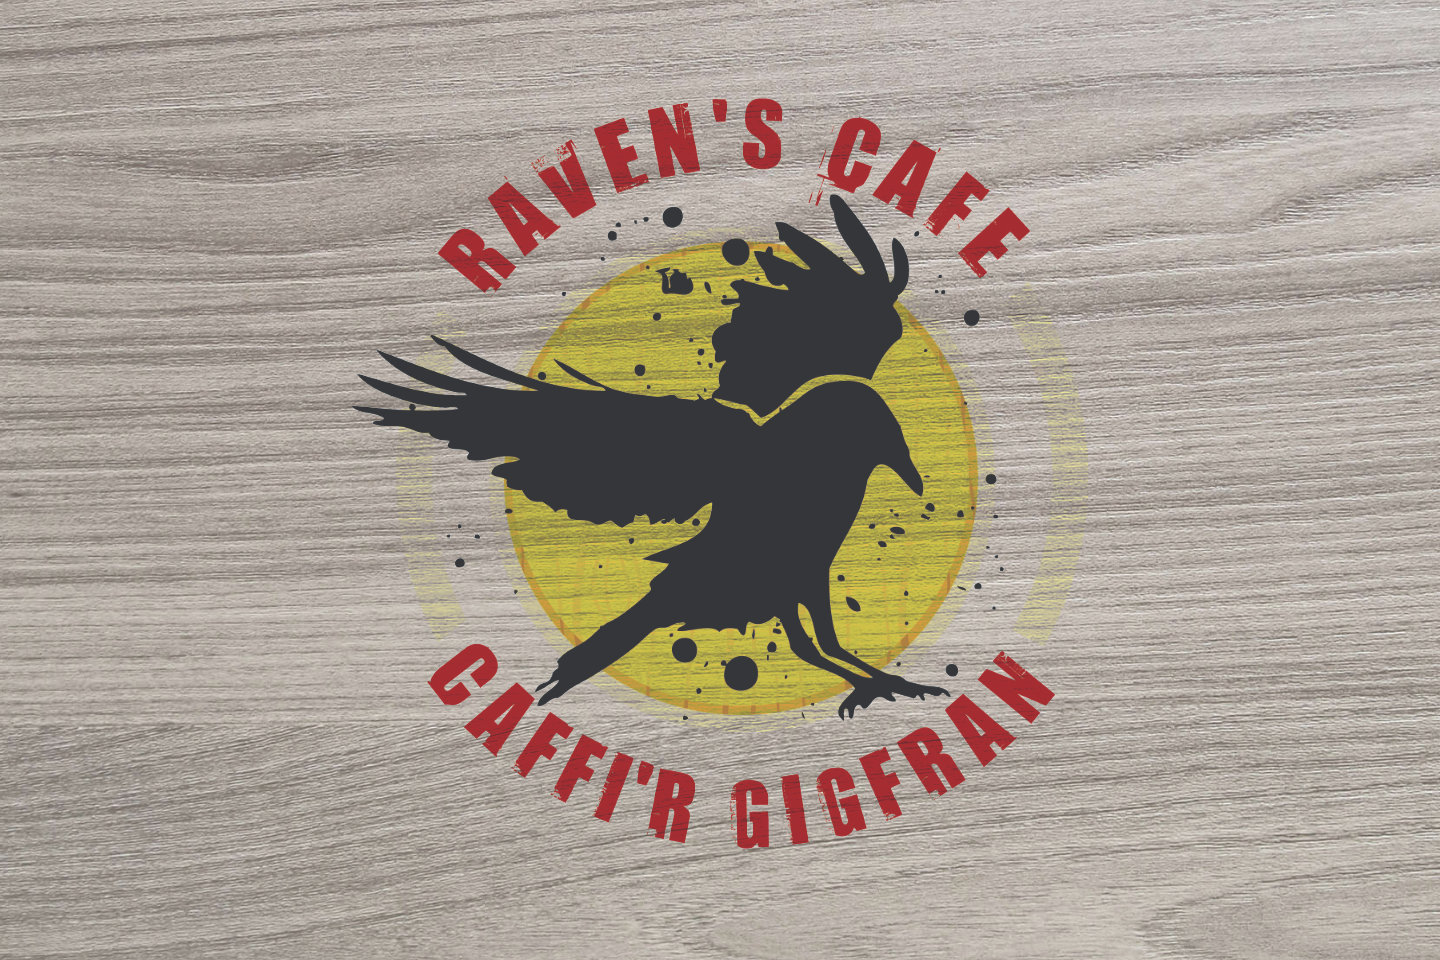 Cwmcarn forest Raven's Cafe logo